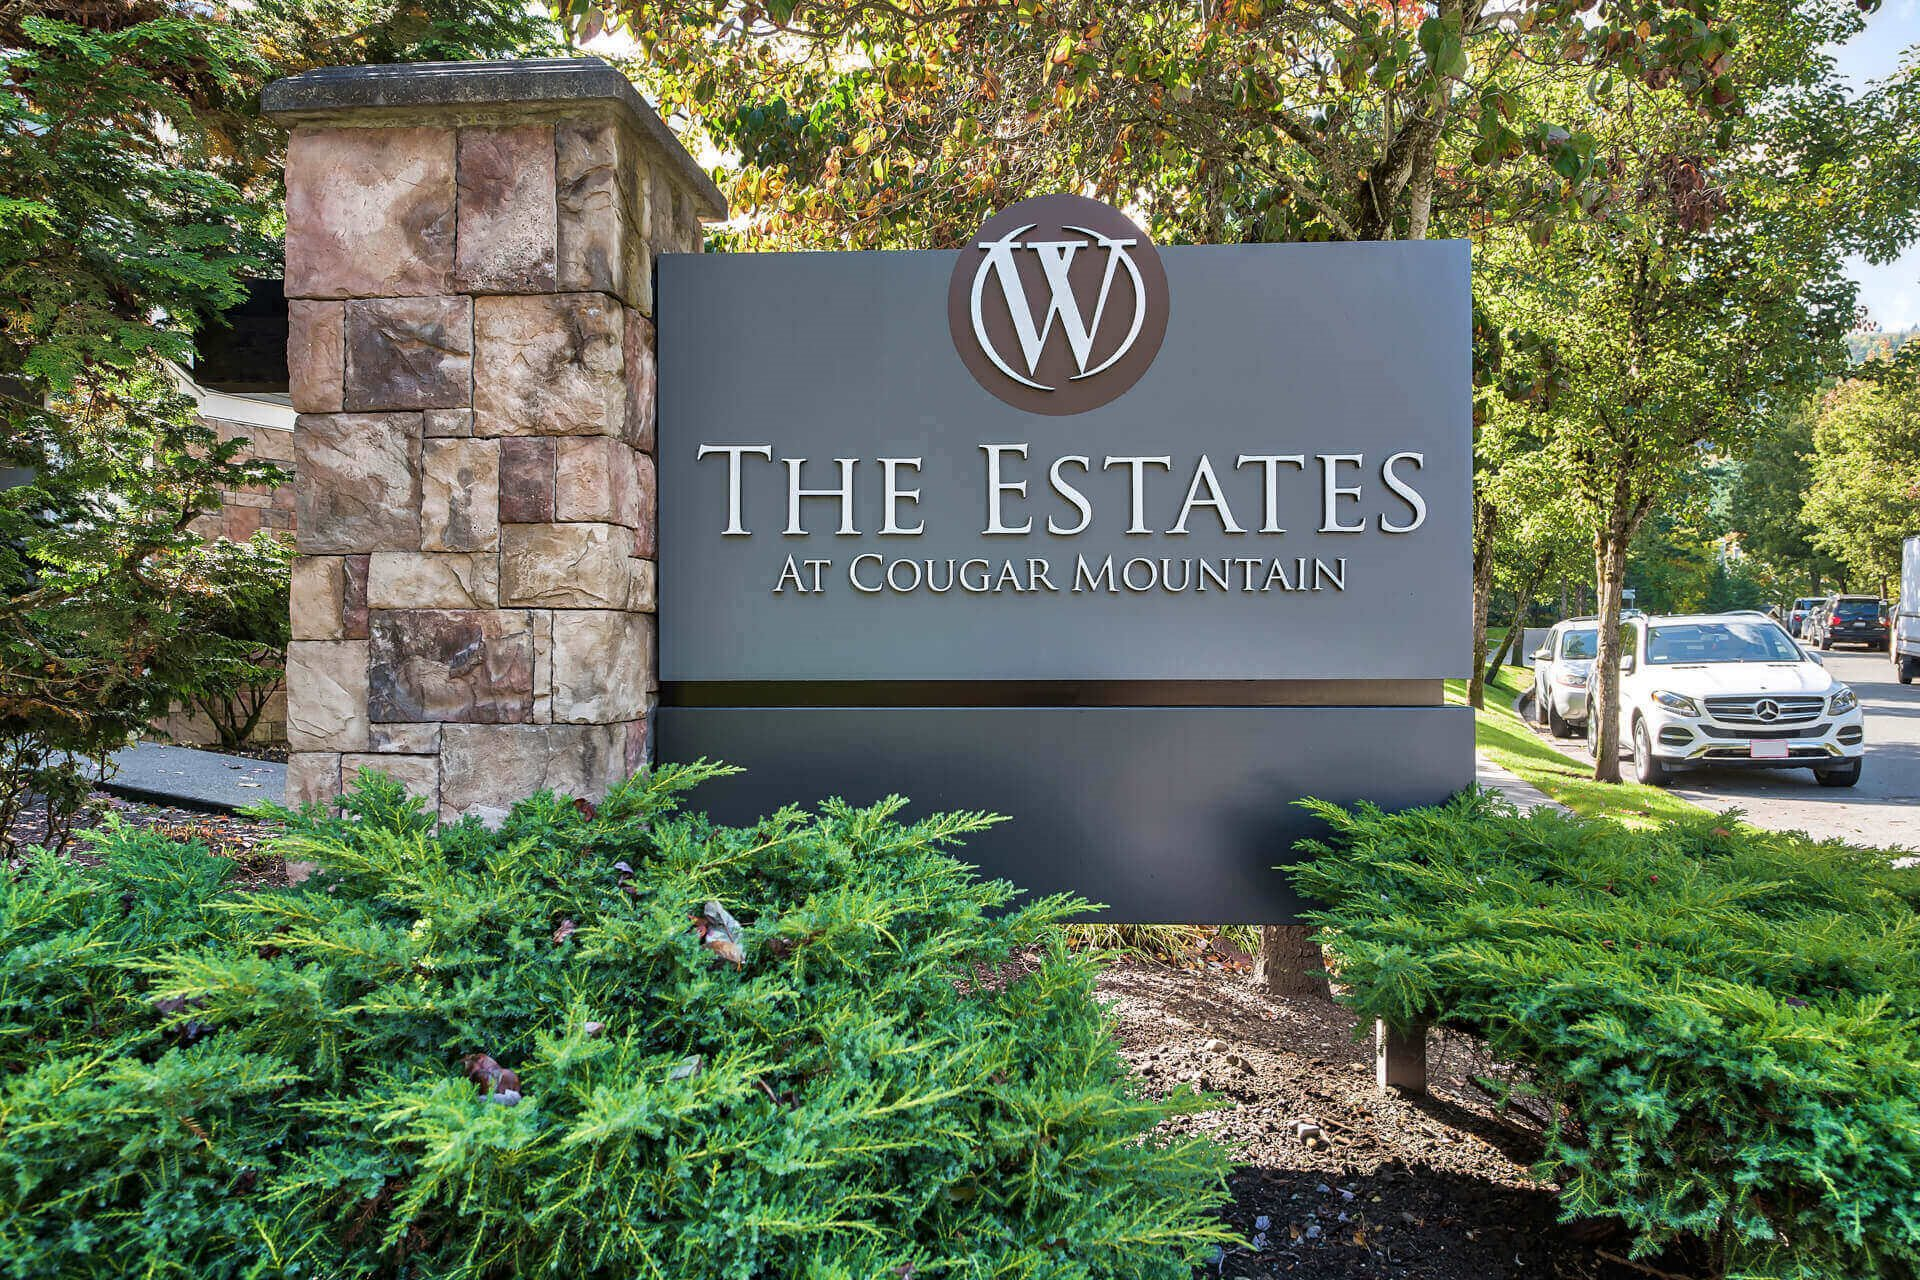 Our office is open 7 days a week to assist you, at The Estates at Cougar Mountain, 2128 Shy Bear Way NW, Issaquah